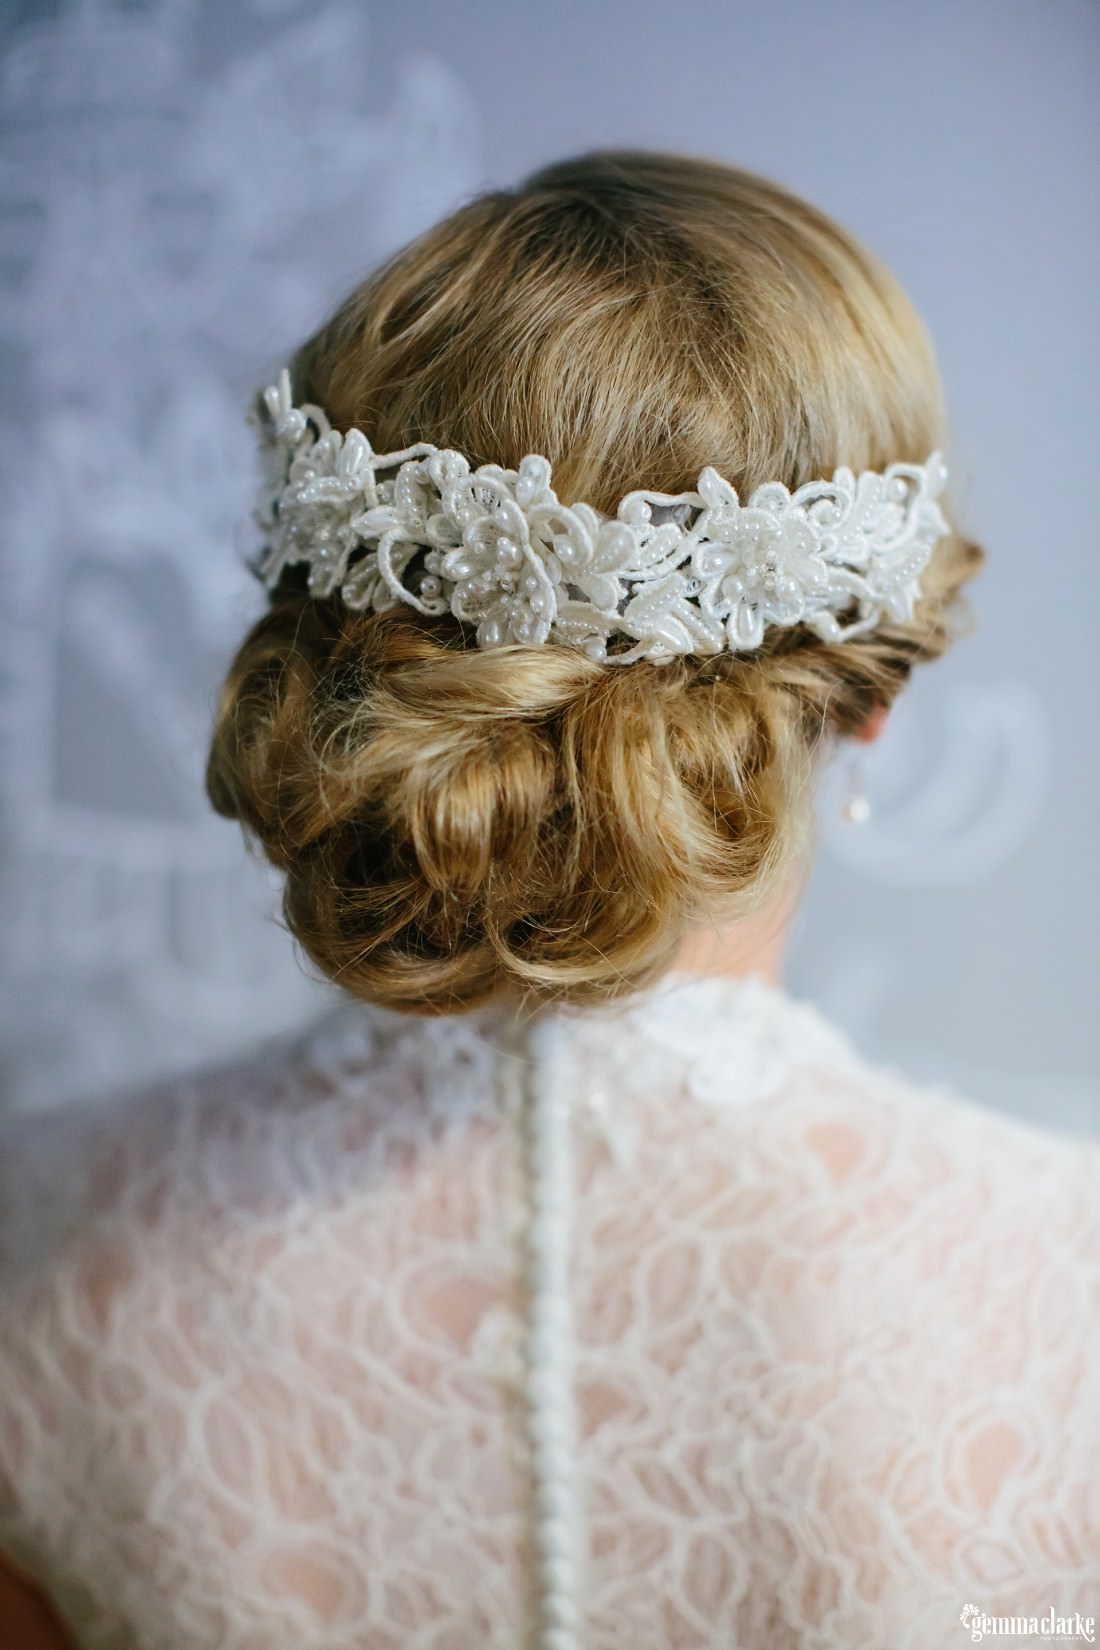 A close up of a bride's hair and hairpiece